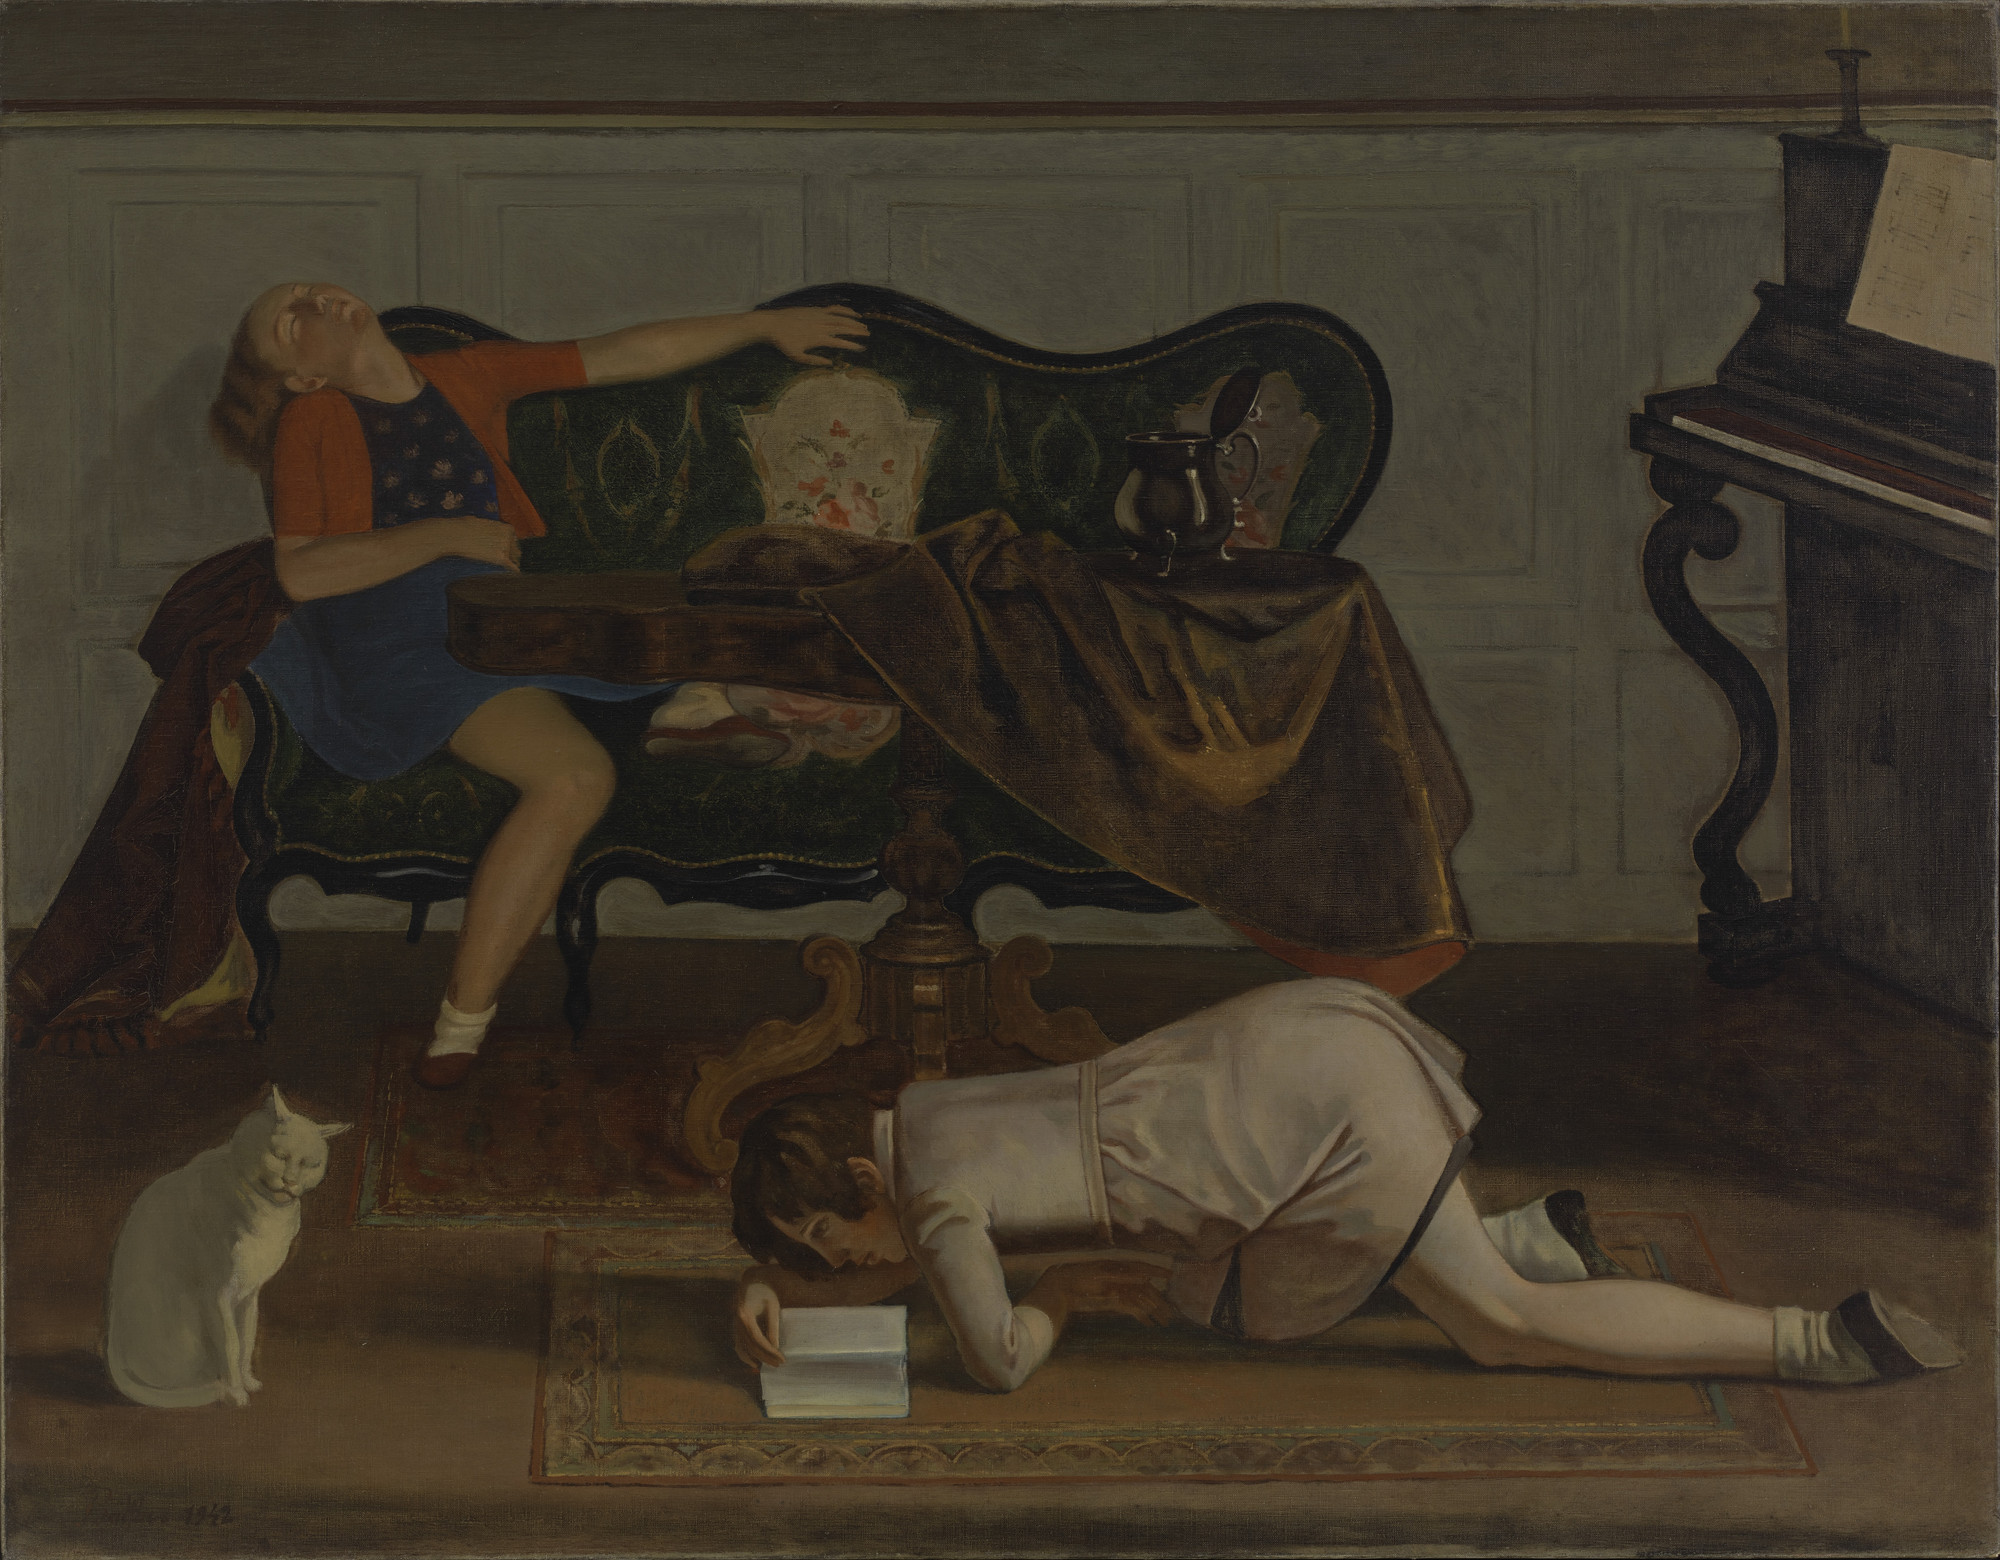 Balthus (Baltusz Klossowski de Rola). The Living Room. 1942